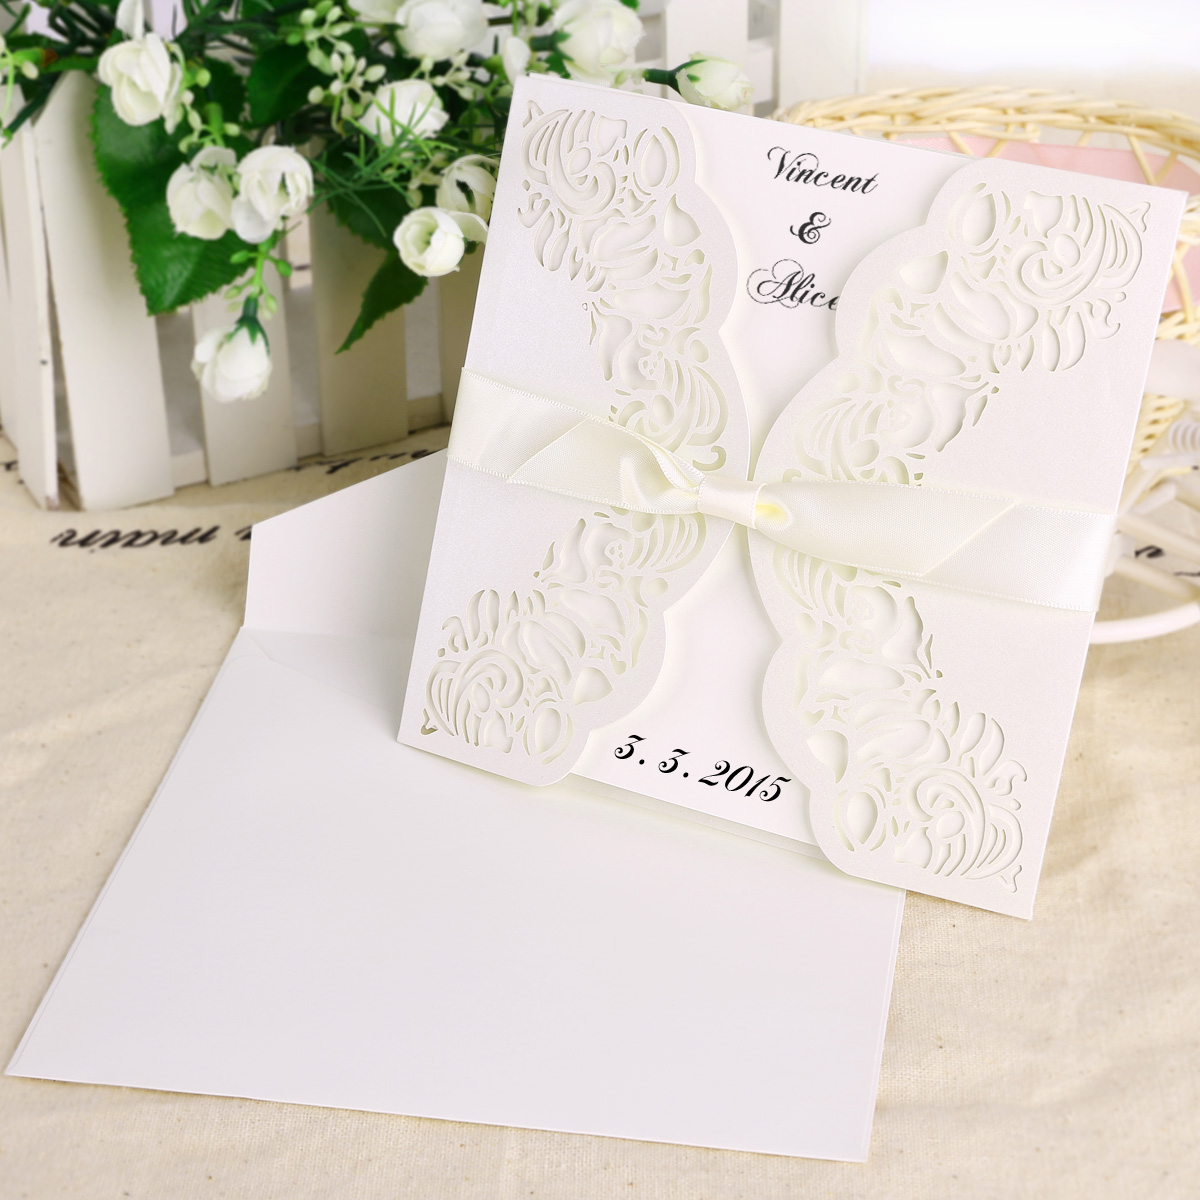 invitation paper and envelopes Wedding envelopes in many styles make your wedding invitation envelopes look unique & stylish white & ivory envelopes, bags, ribbon, place cards, & labels.